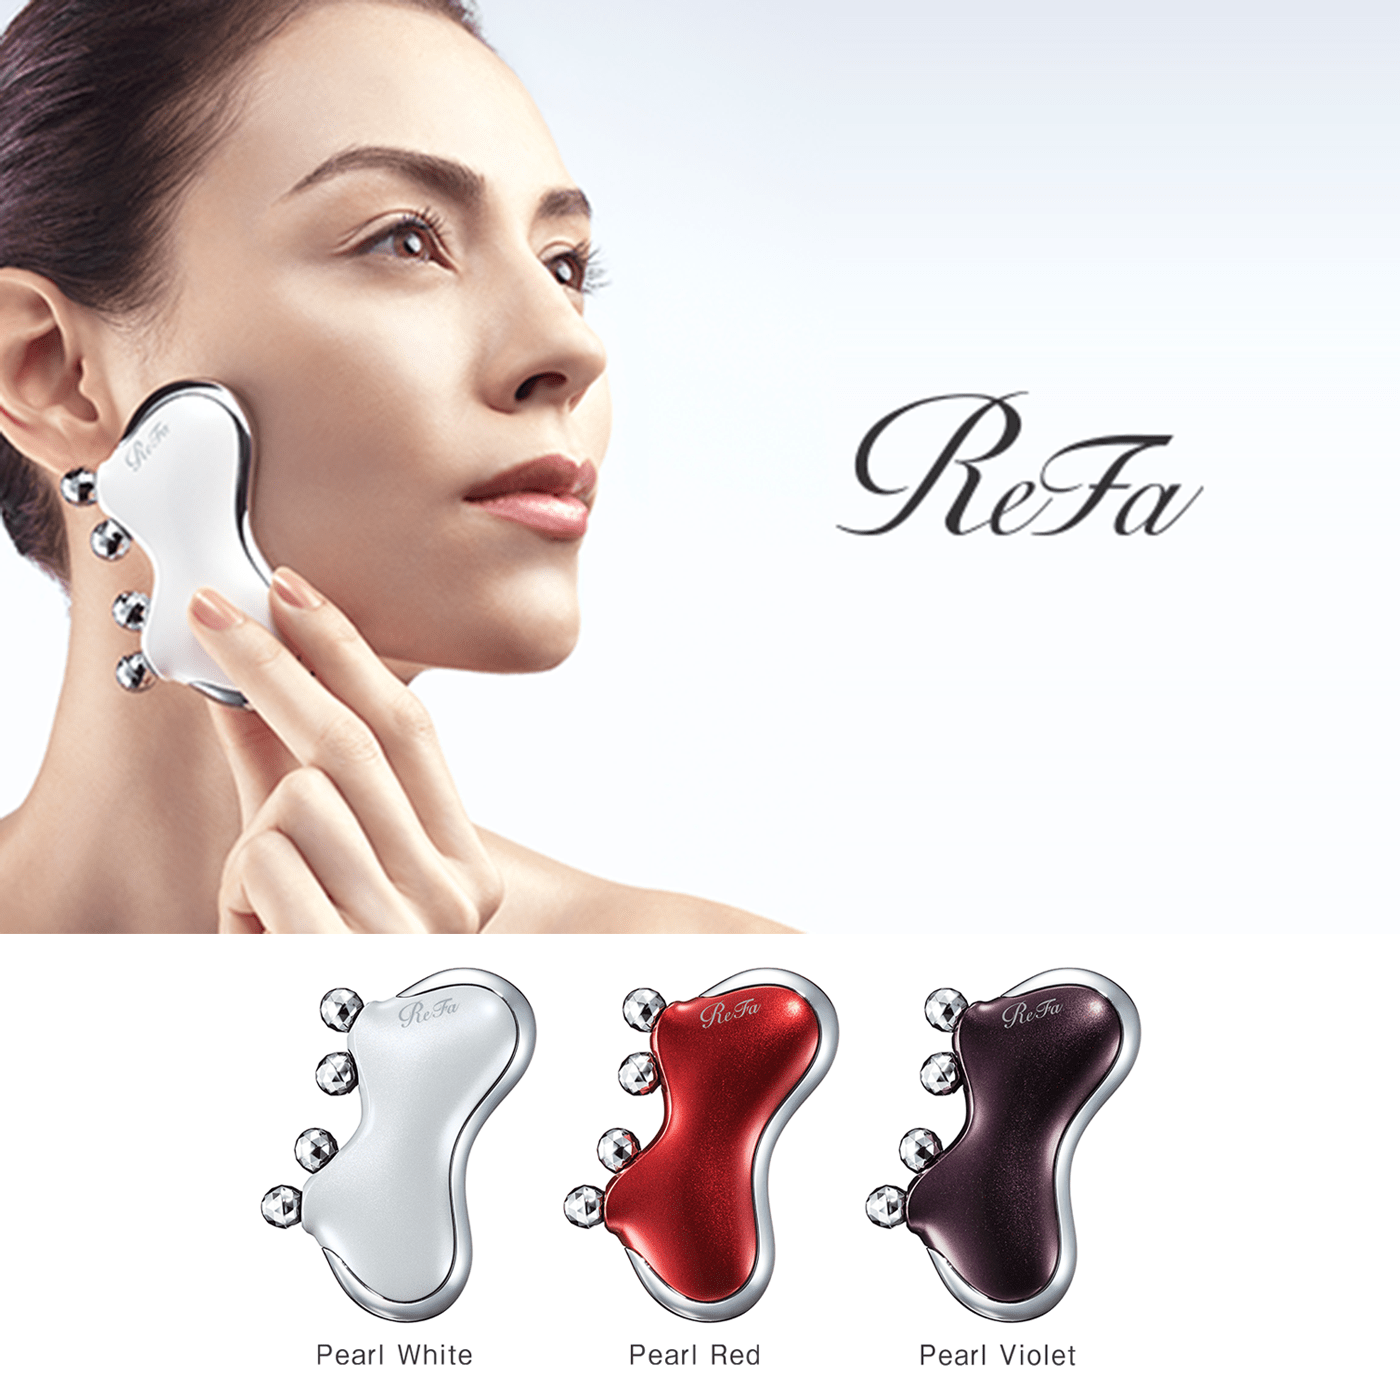 Introducing the ReFa CAXA M1 with all-new Quick Release Lift<sup>1</sup> action. Intensive beauty care for the cheeks, made easy.